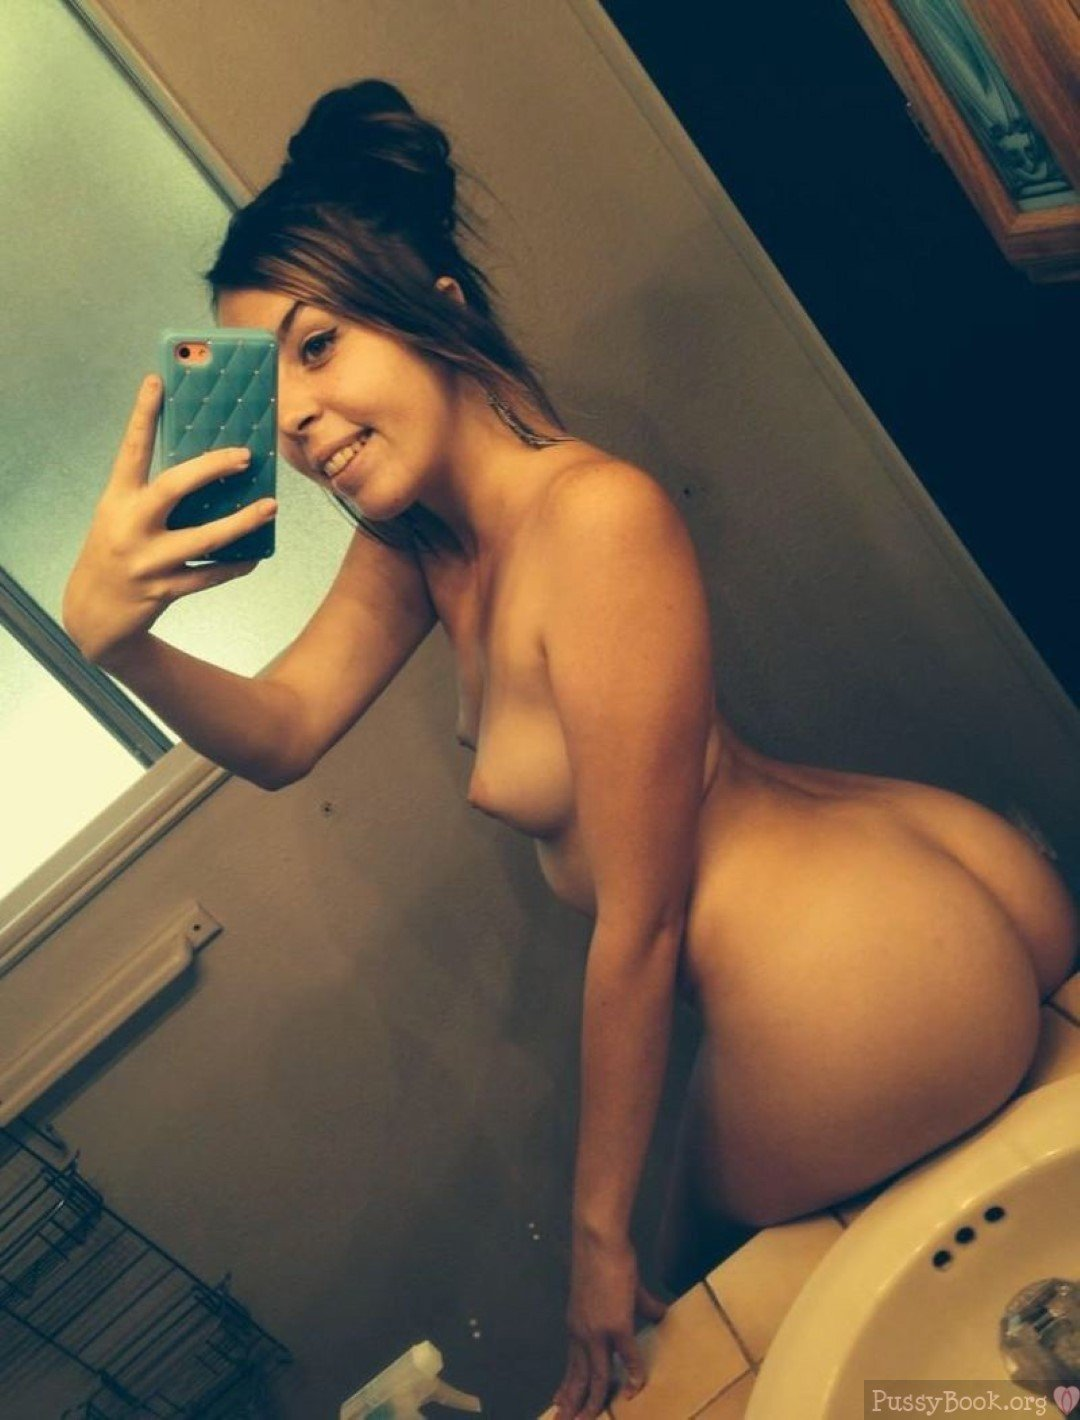 Nude Babe Selfie Of Perfect Round Butt  Pussy Pictures -8514